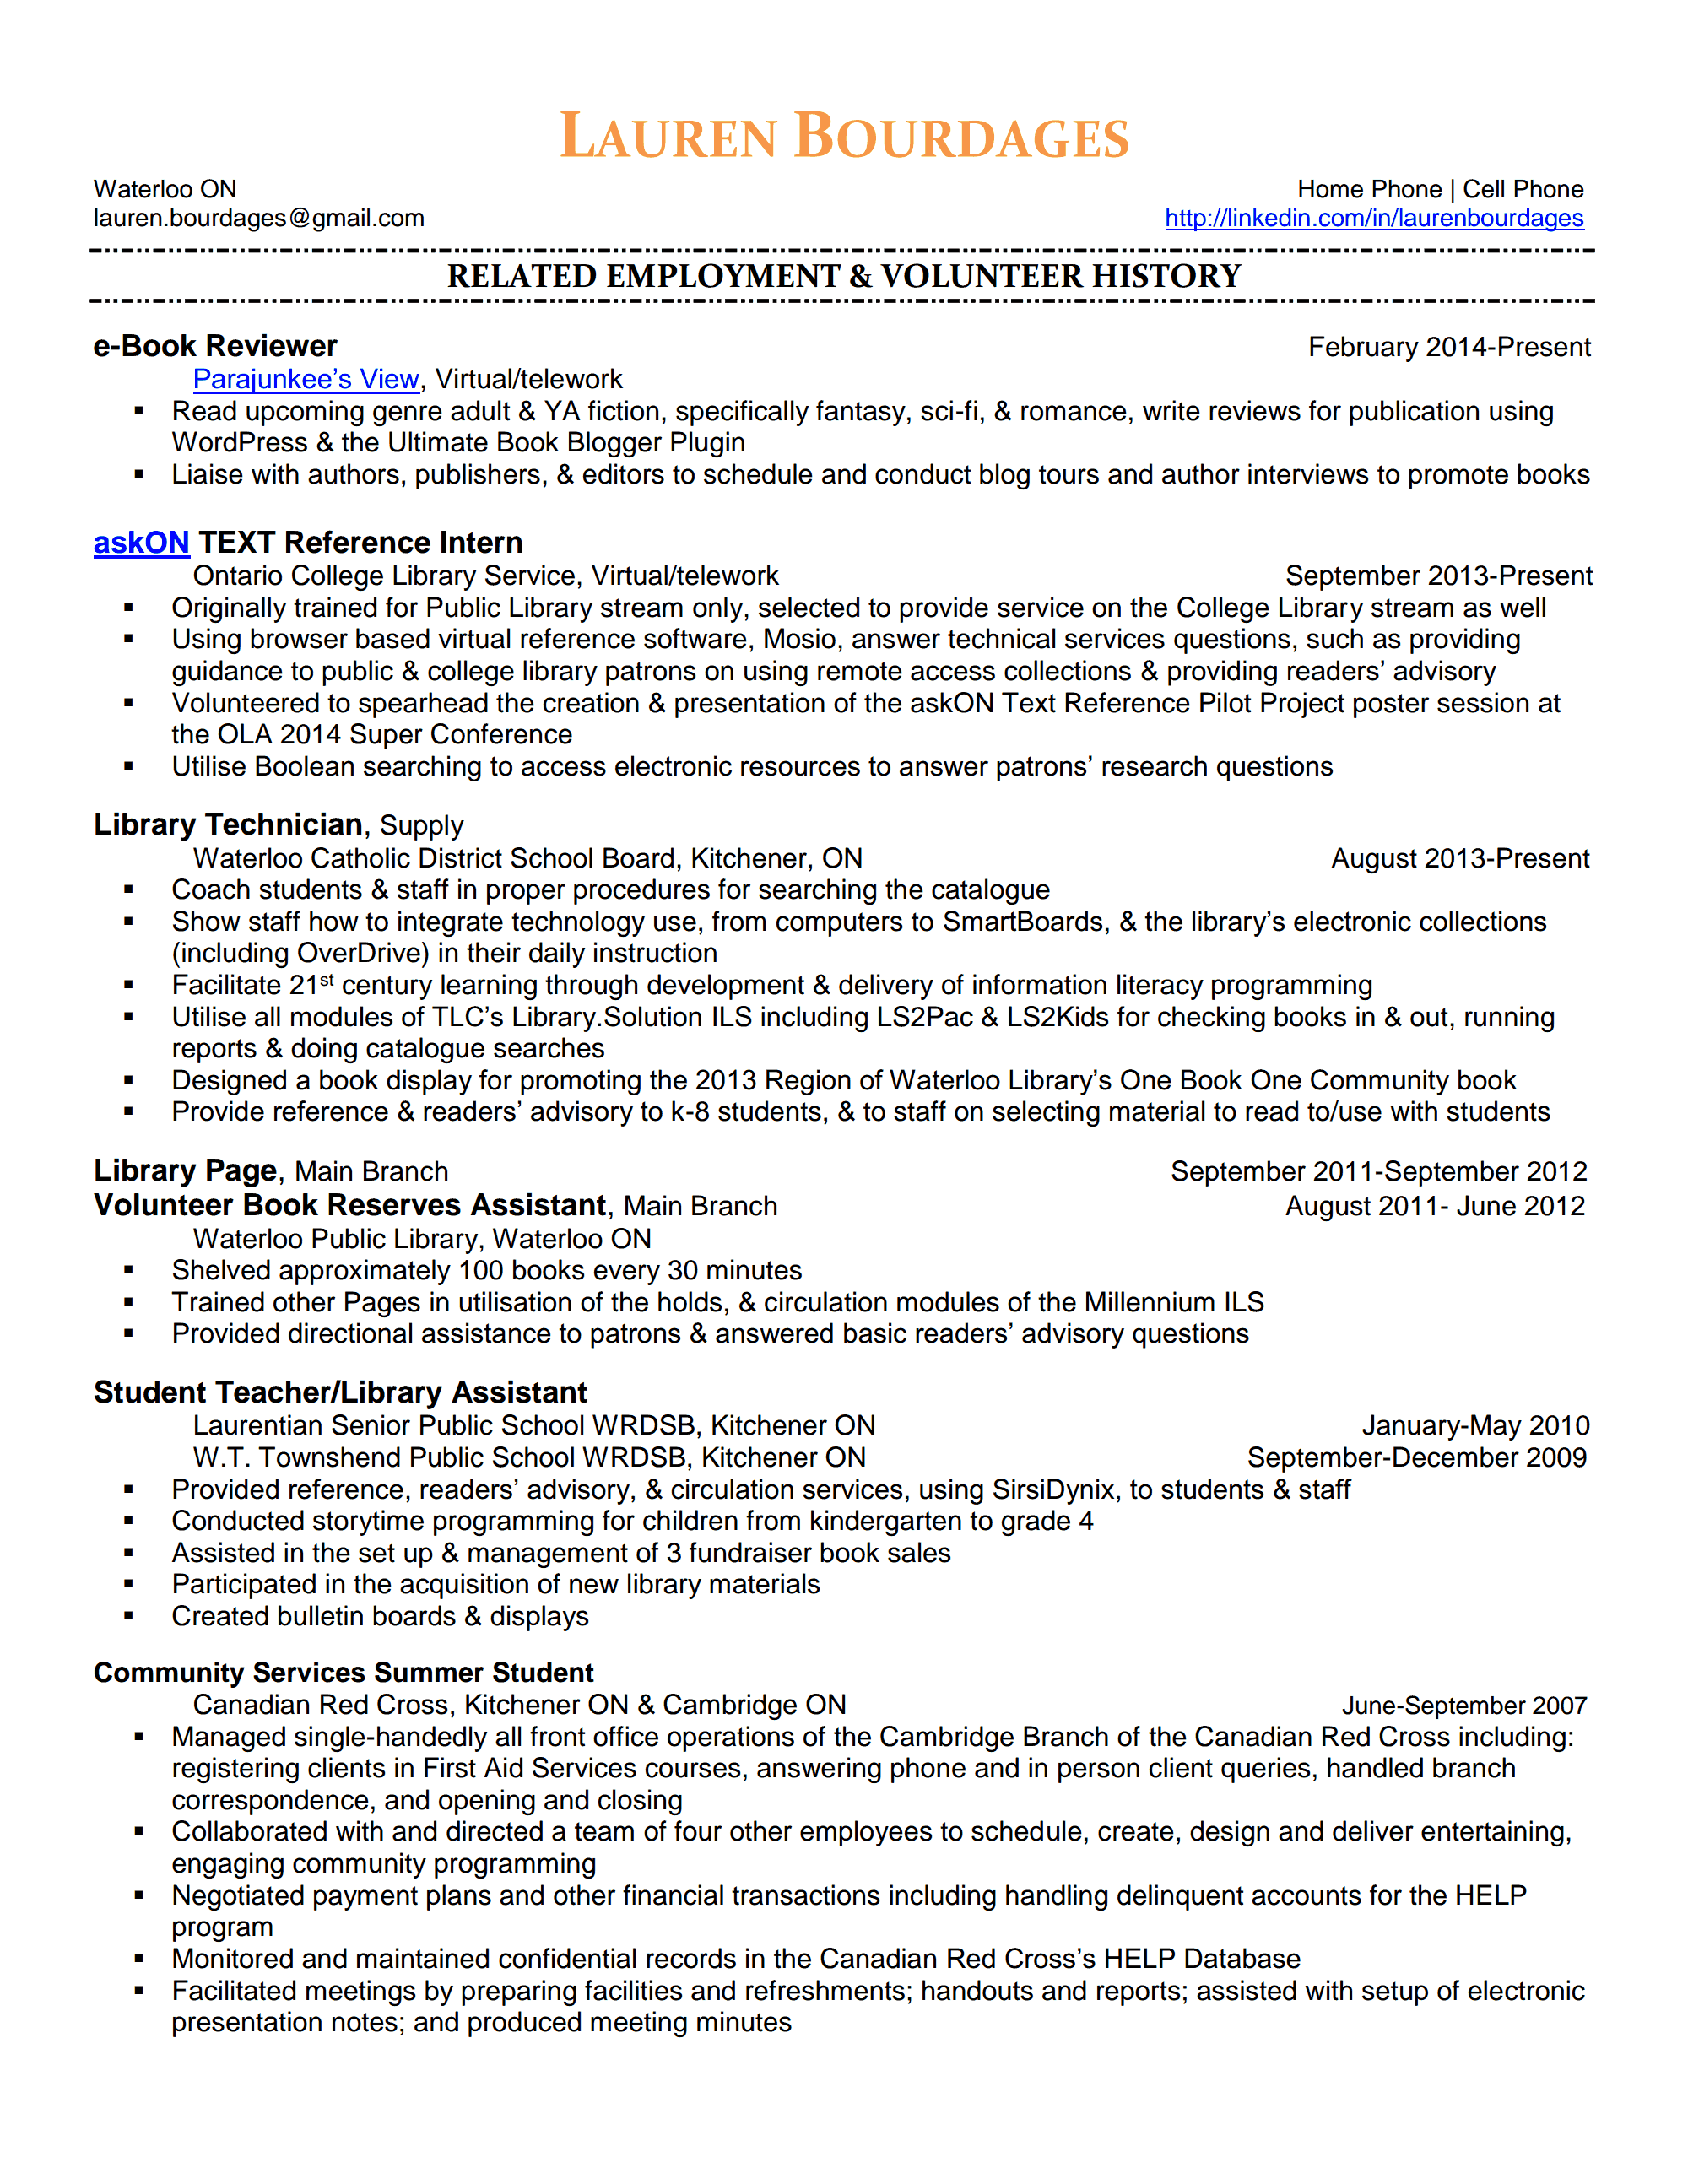 laurenbourdages resume page 1